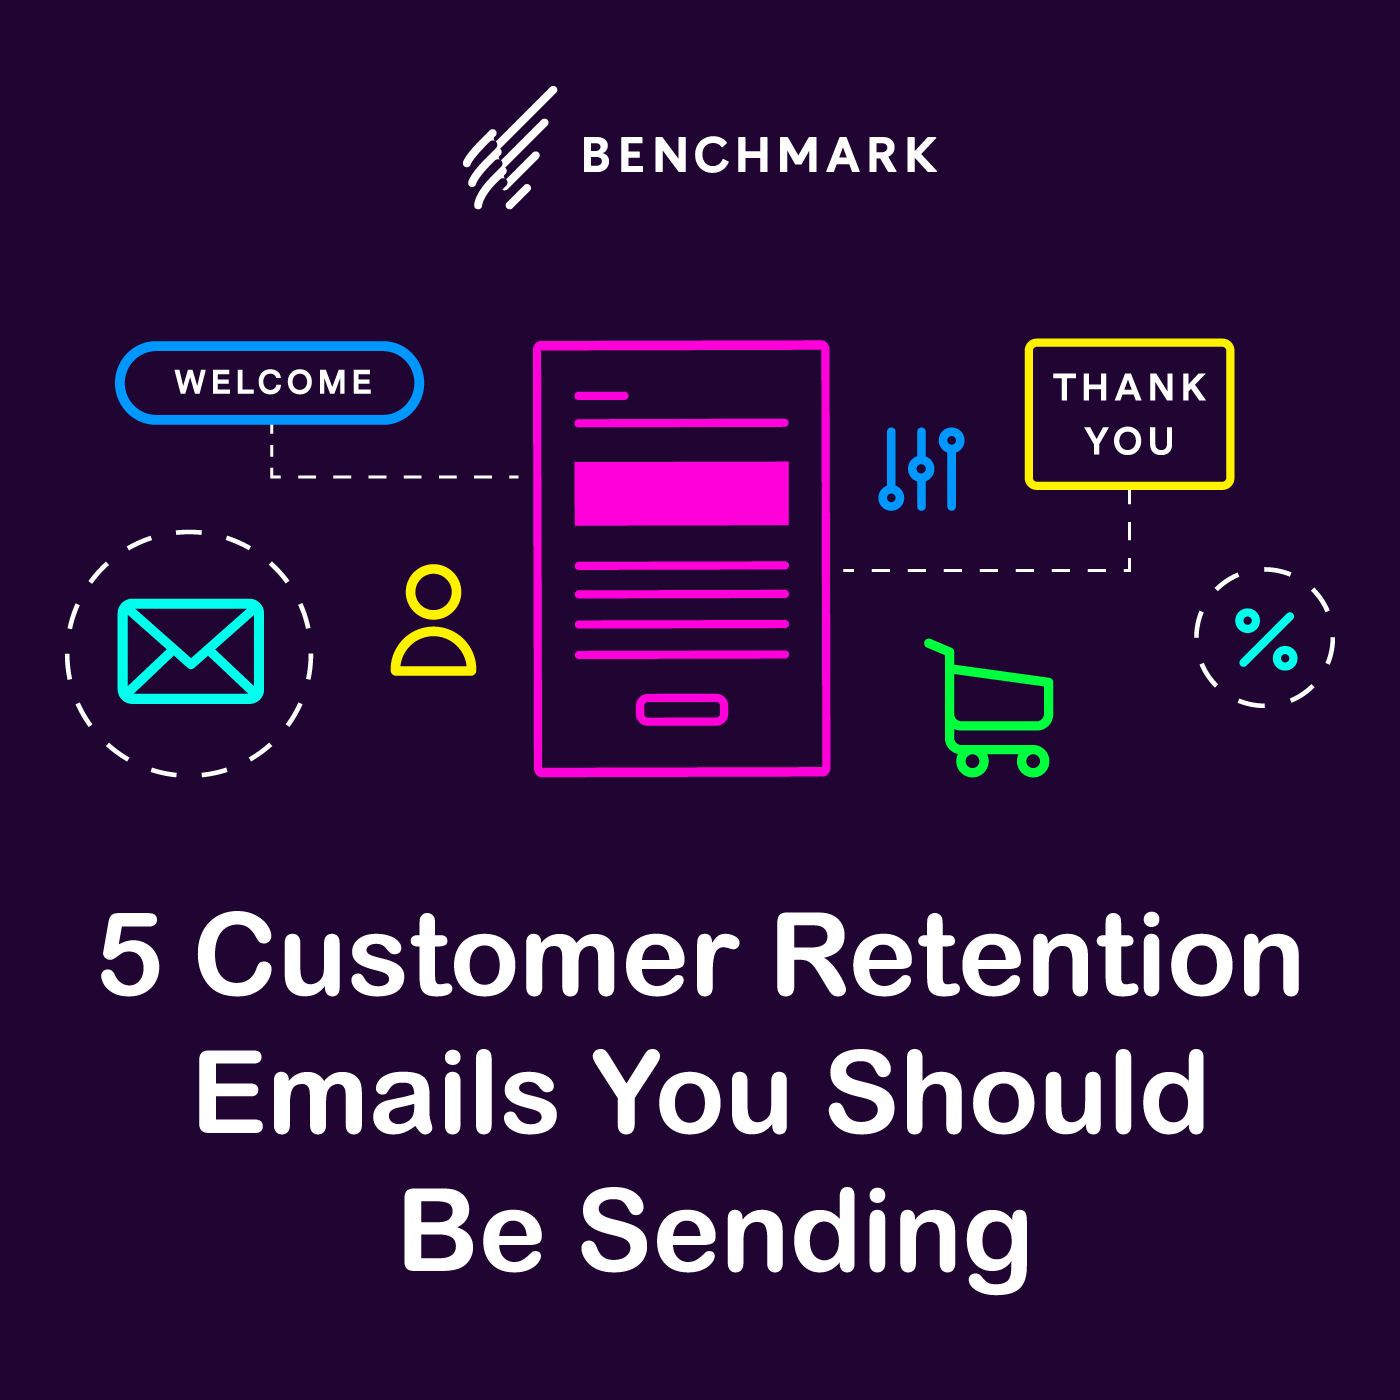 5 Customer Retention Emails You Should Be Sending